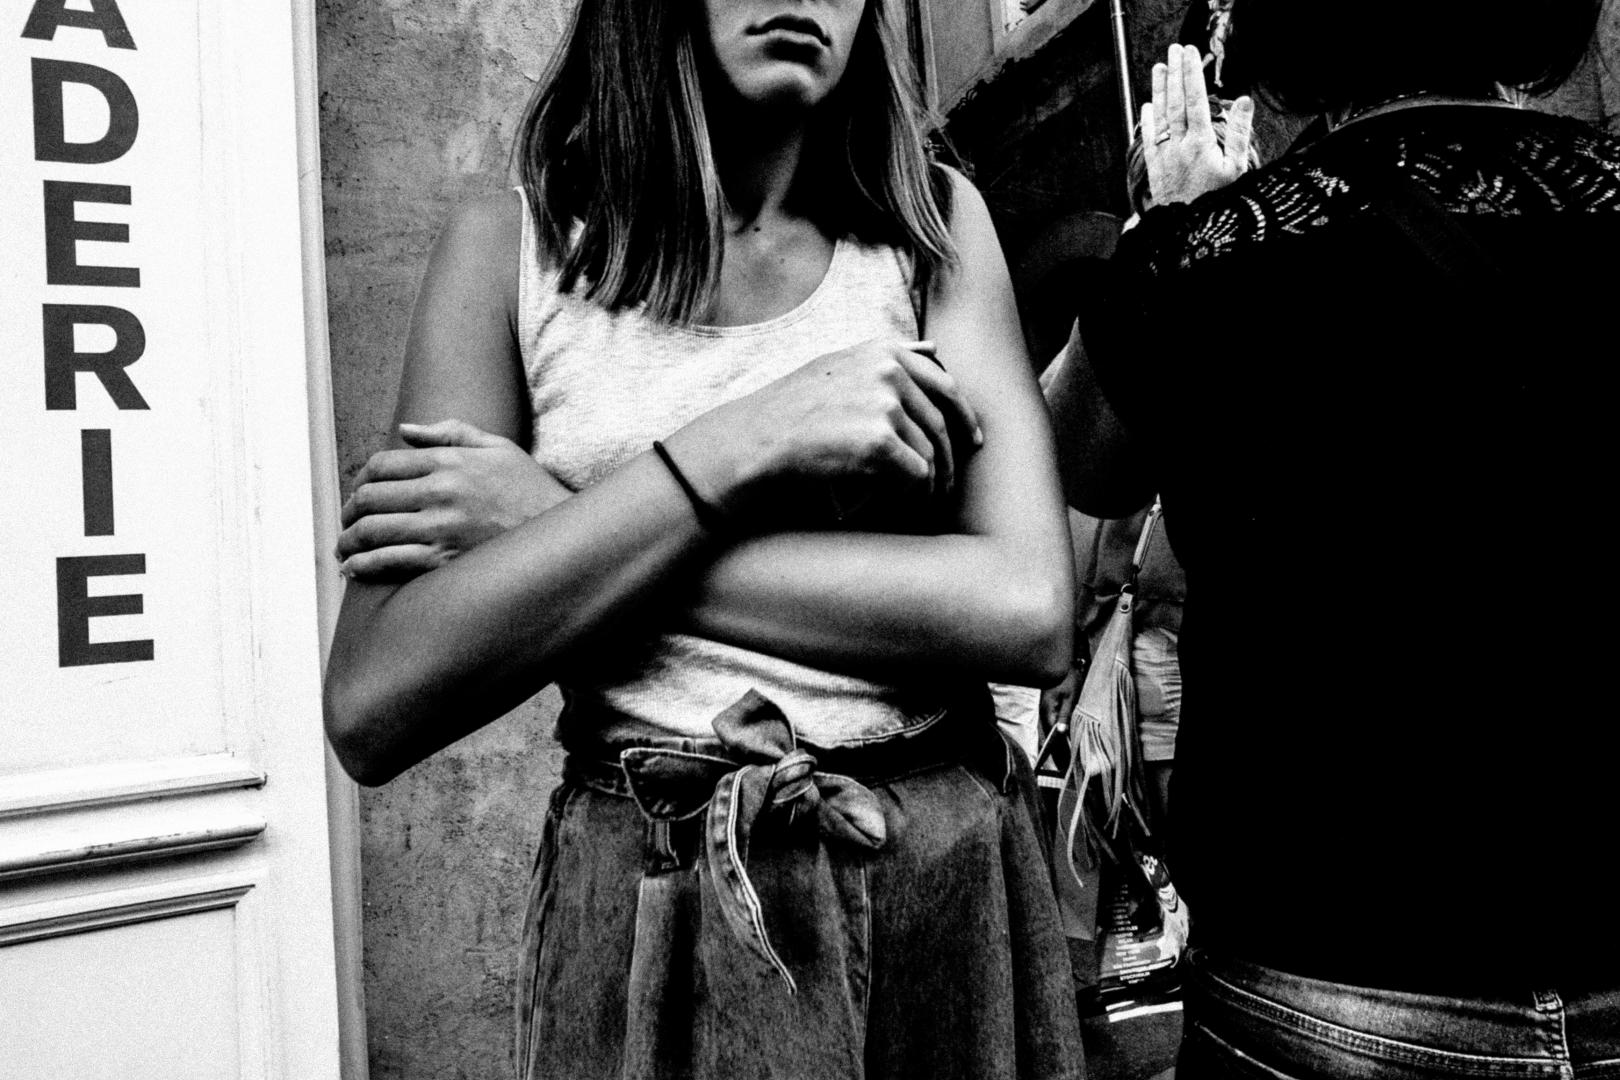 jeff-chane-mouye-street-photography-RGPD-09